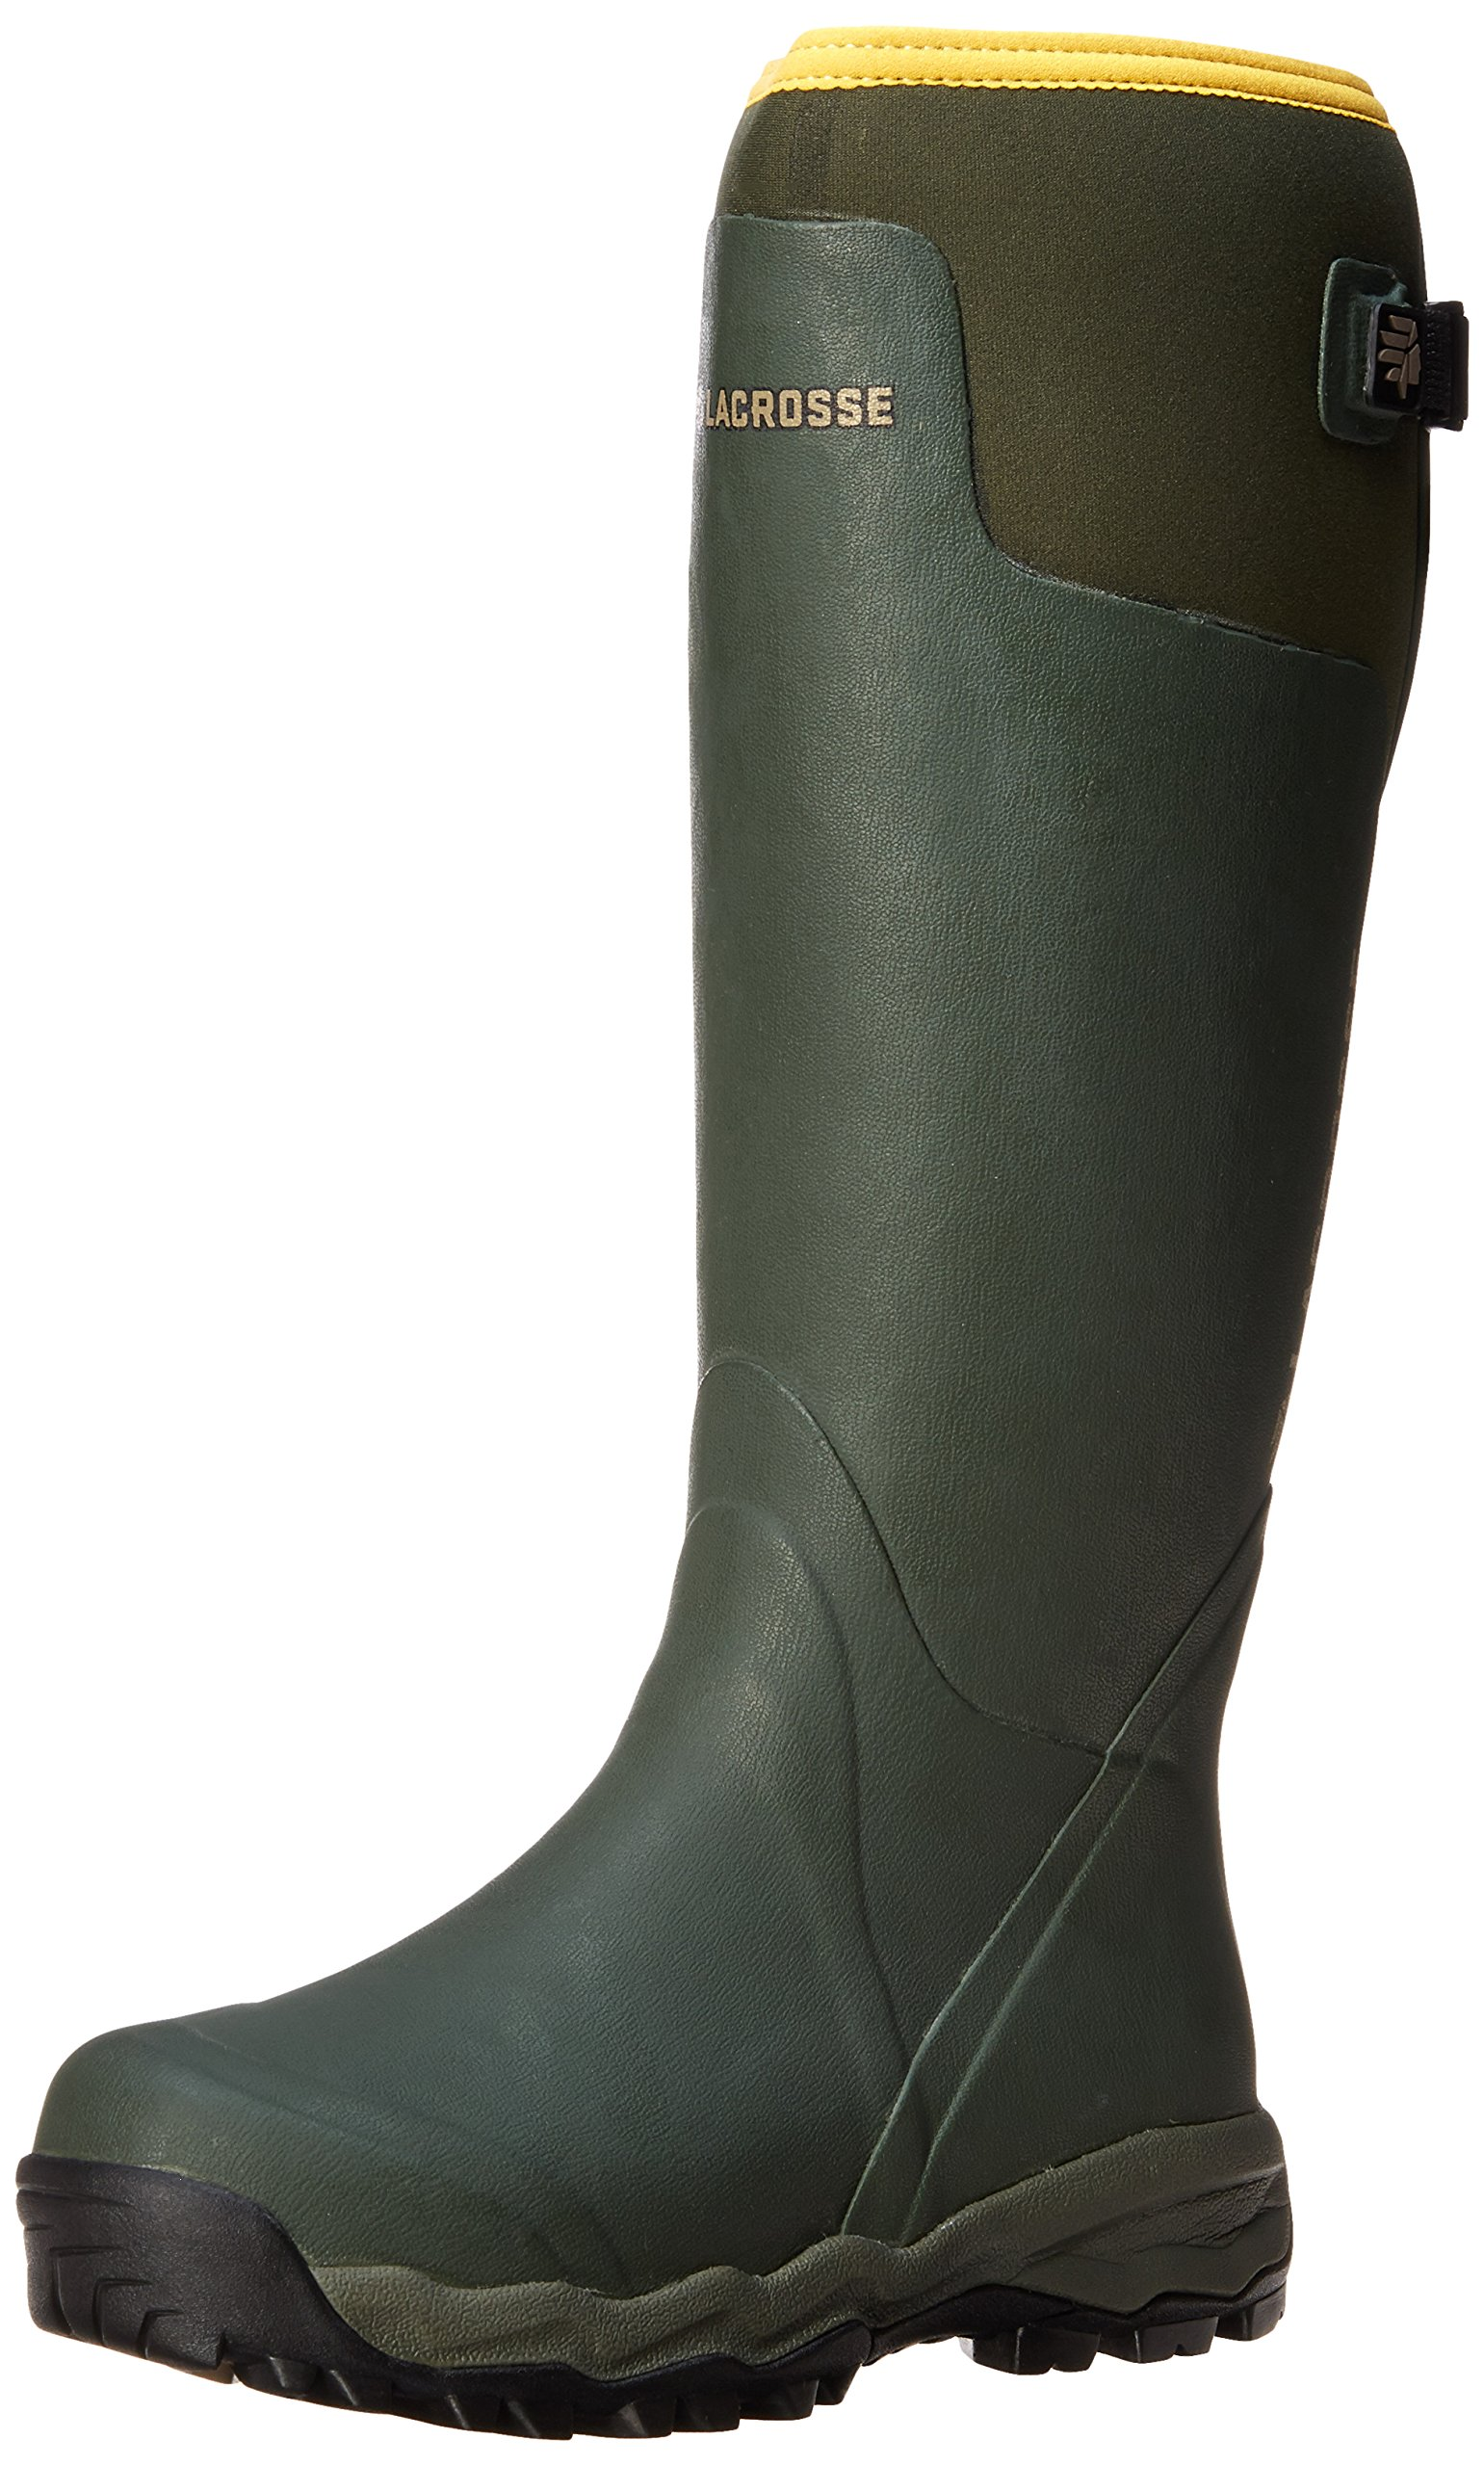 Lacrosse Men's Alphaburly Pro 18'' Hunting Boot,Green,11 M US by Lacrosse